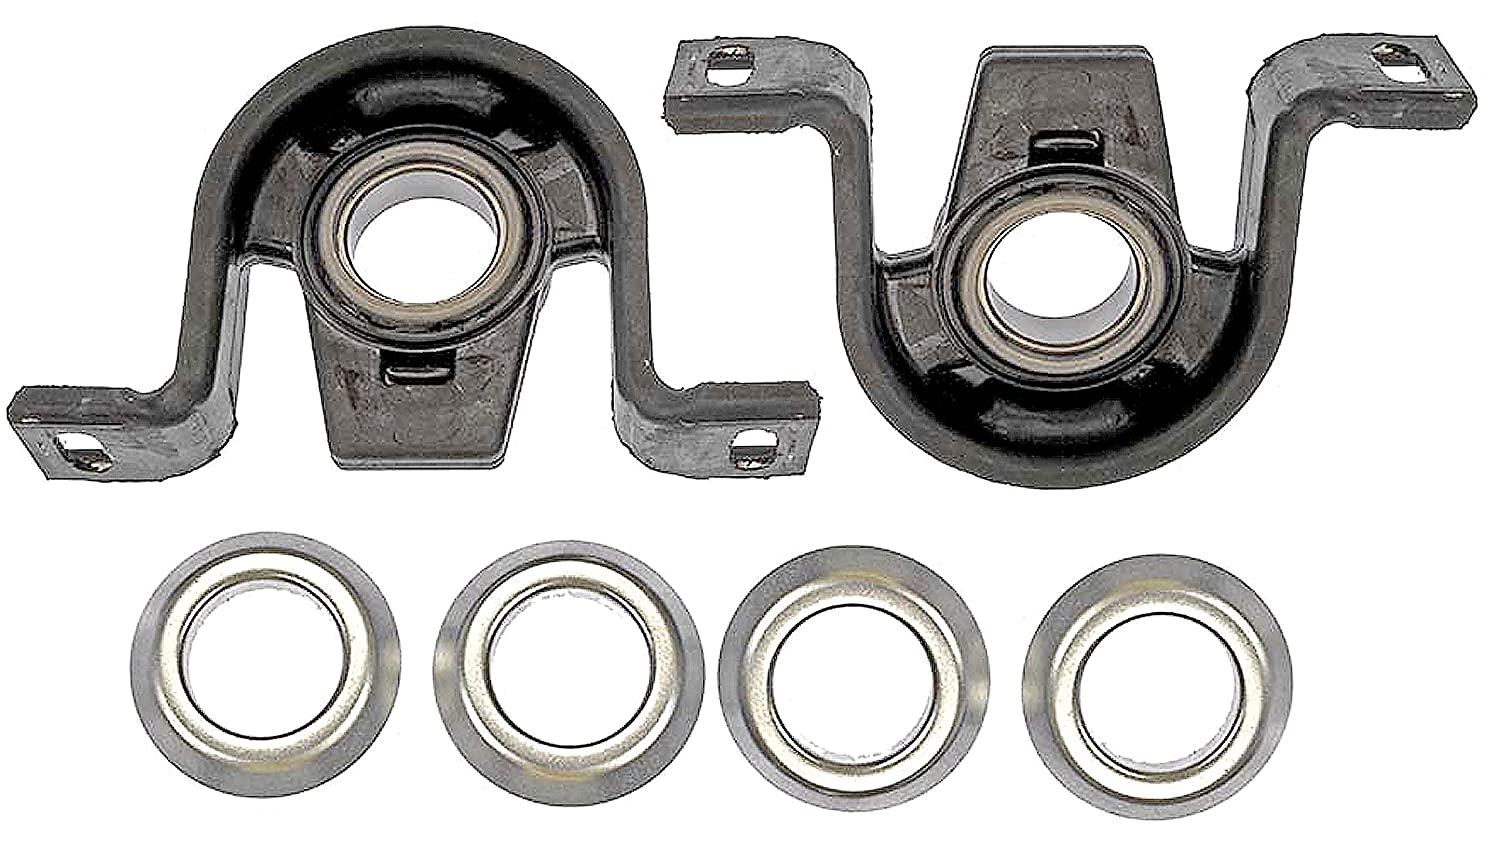 APDTY 045413x2 Driveshaft Center Support Bearing Pair Fits 03-06 Sprinter Van